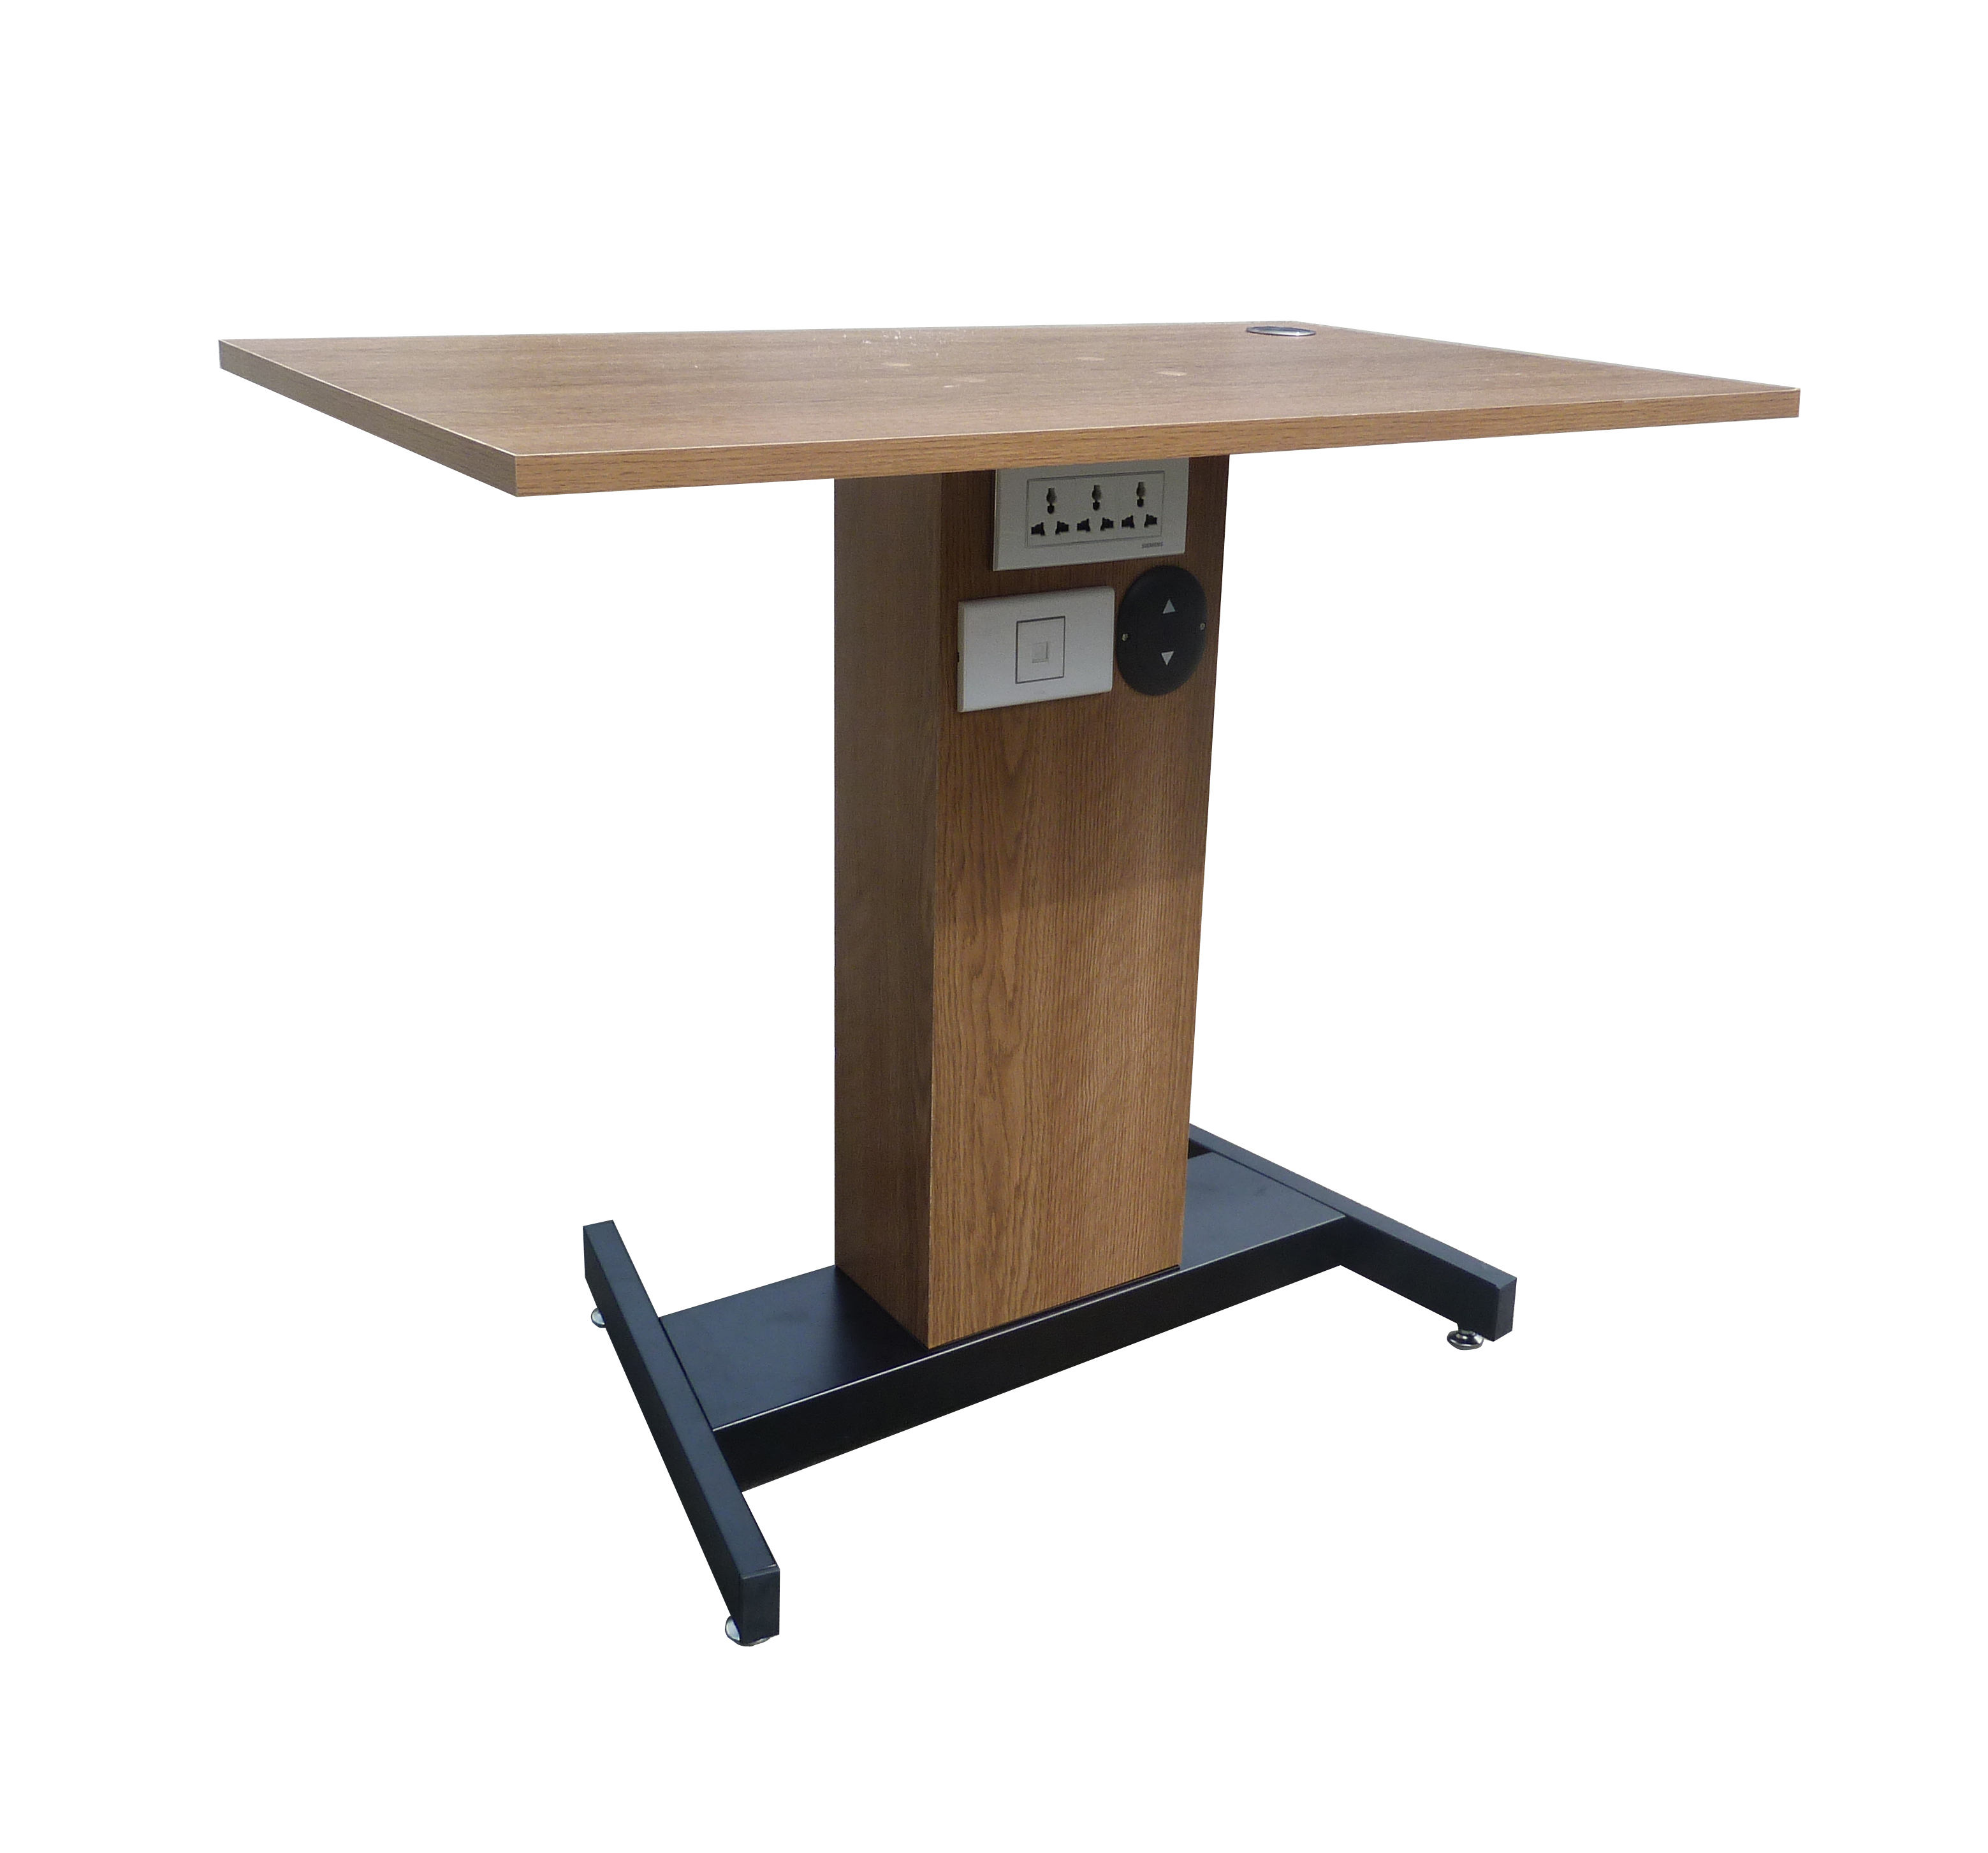 bk standing desks up quick adjustable prop store to height and view stand sit crank desk tk